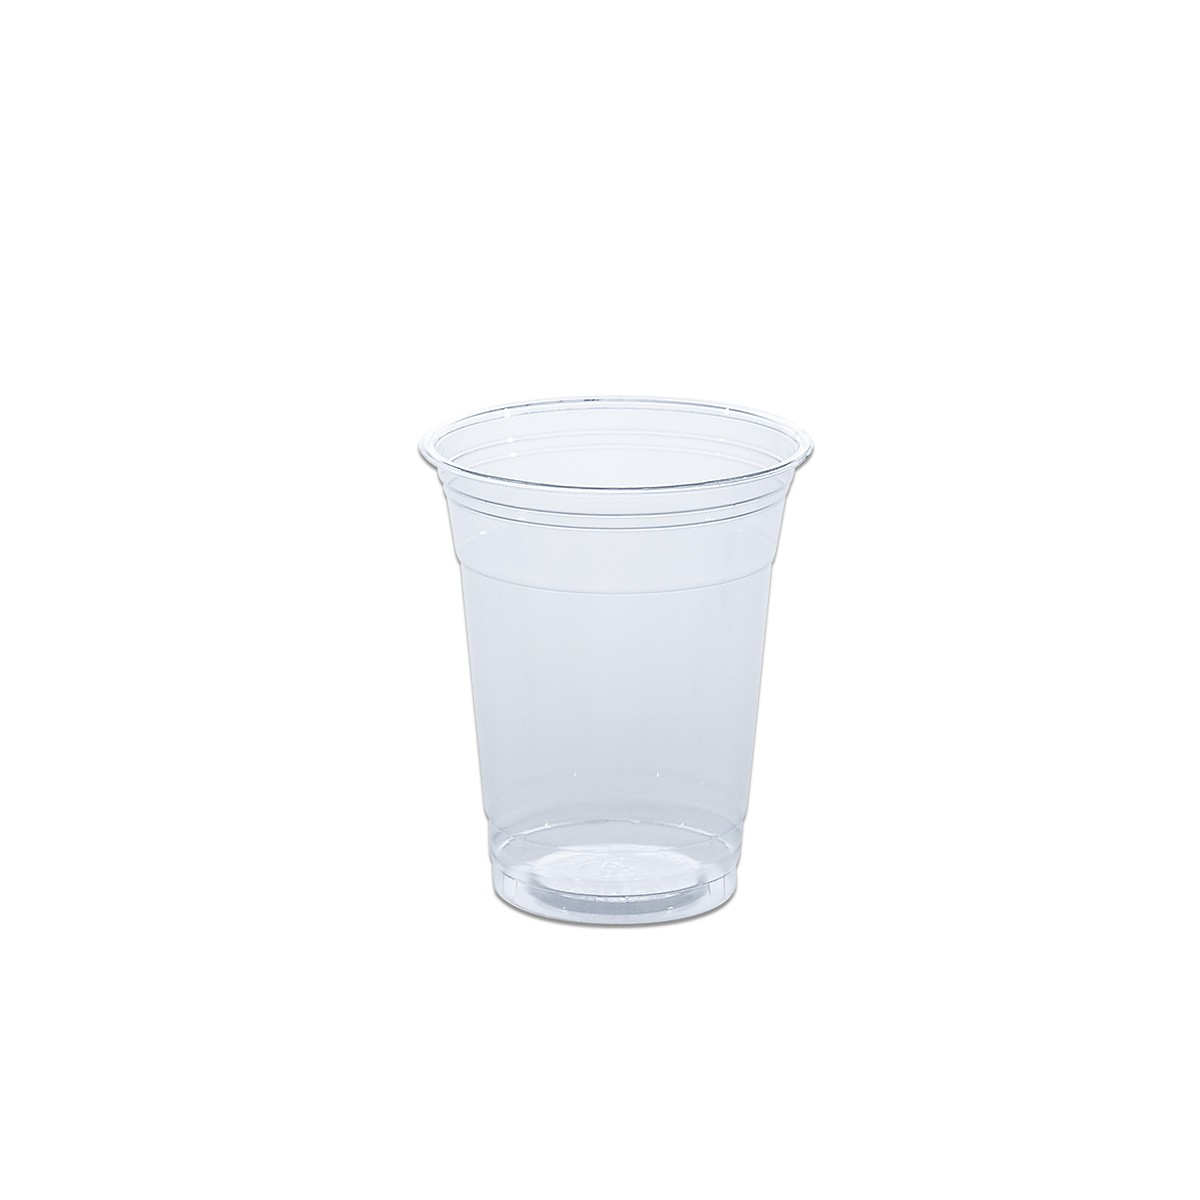 Clear Plastic Cups 10oz - PET | 50pcsx20pkts